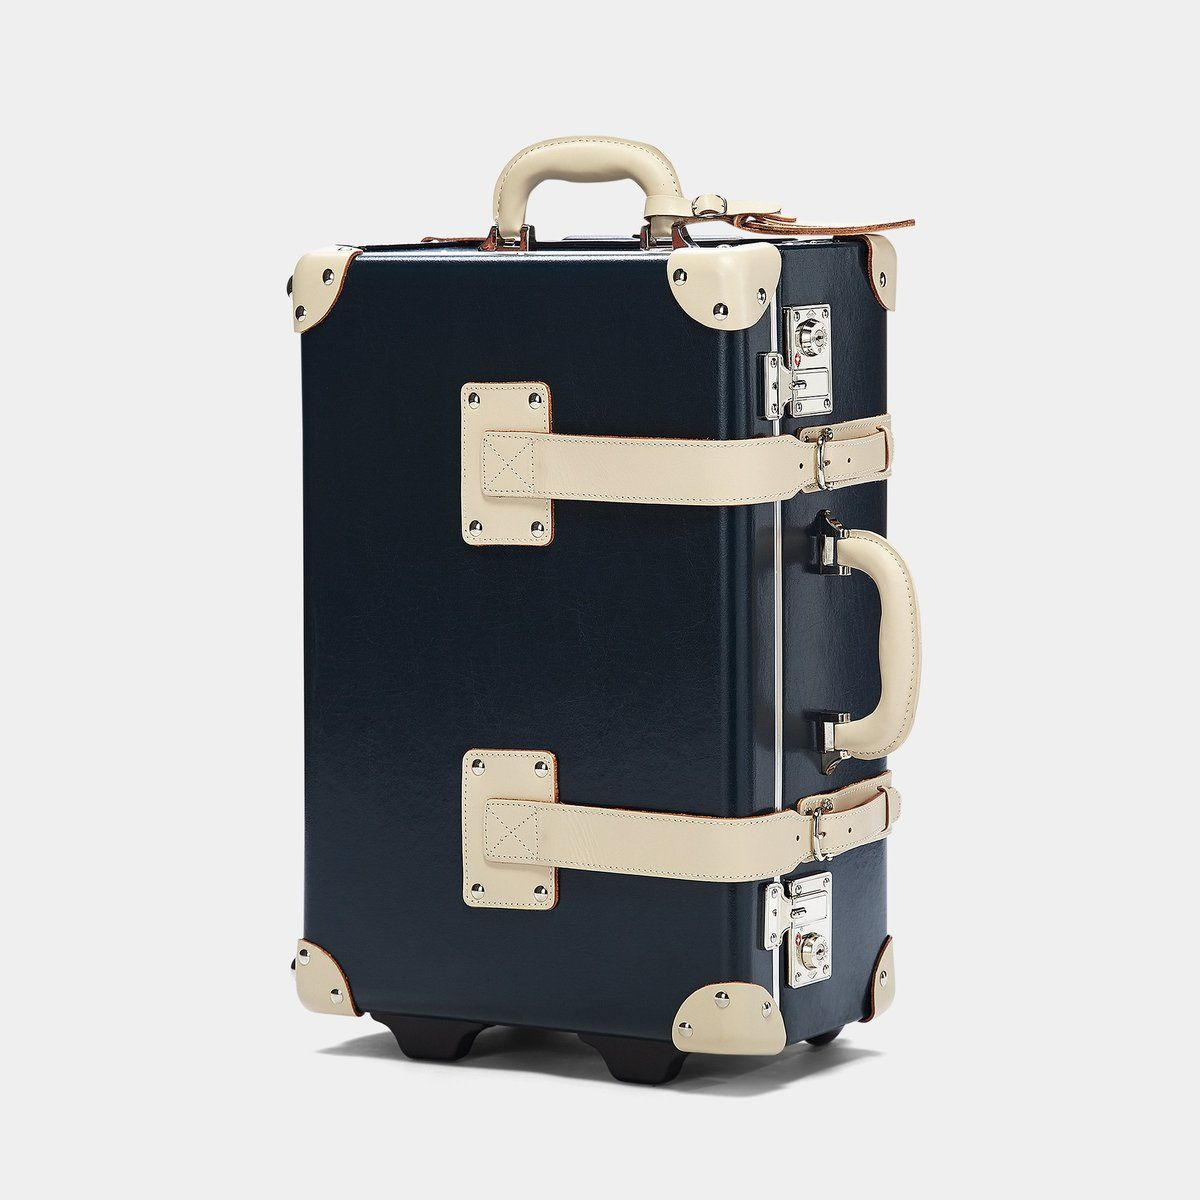 26 Best Rolling Luggage 2019